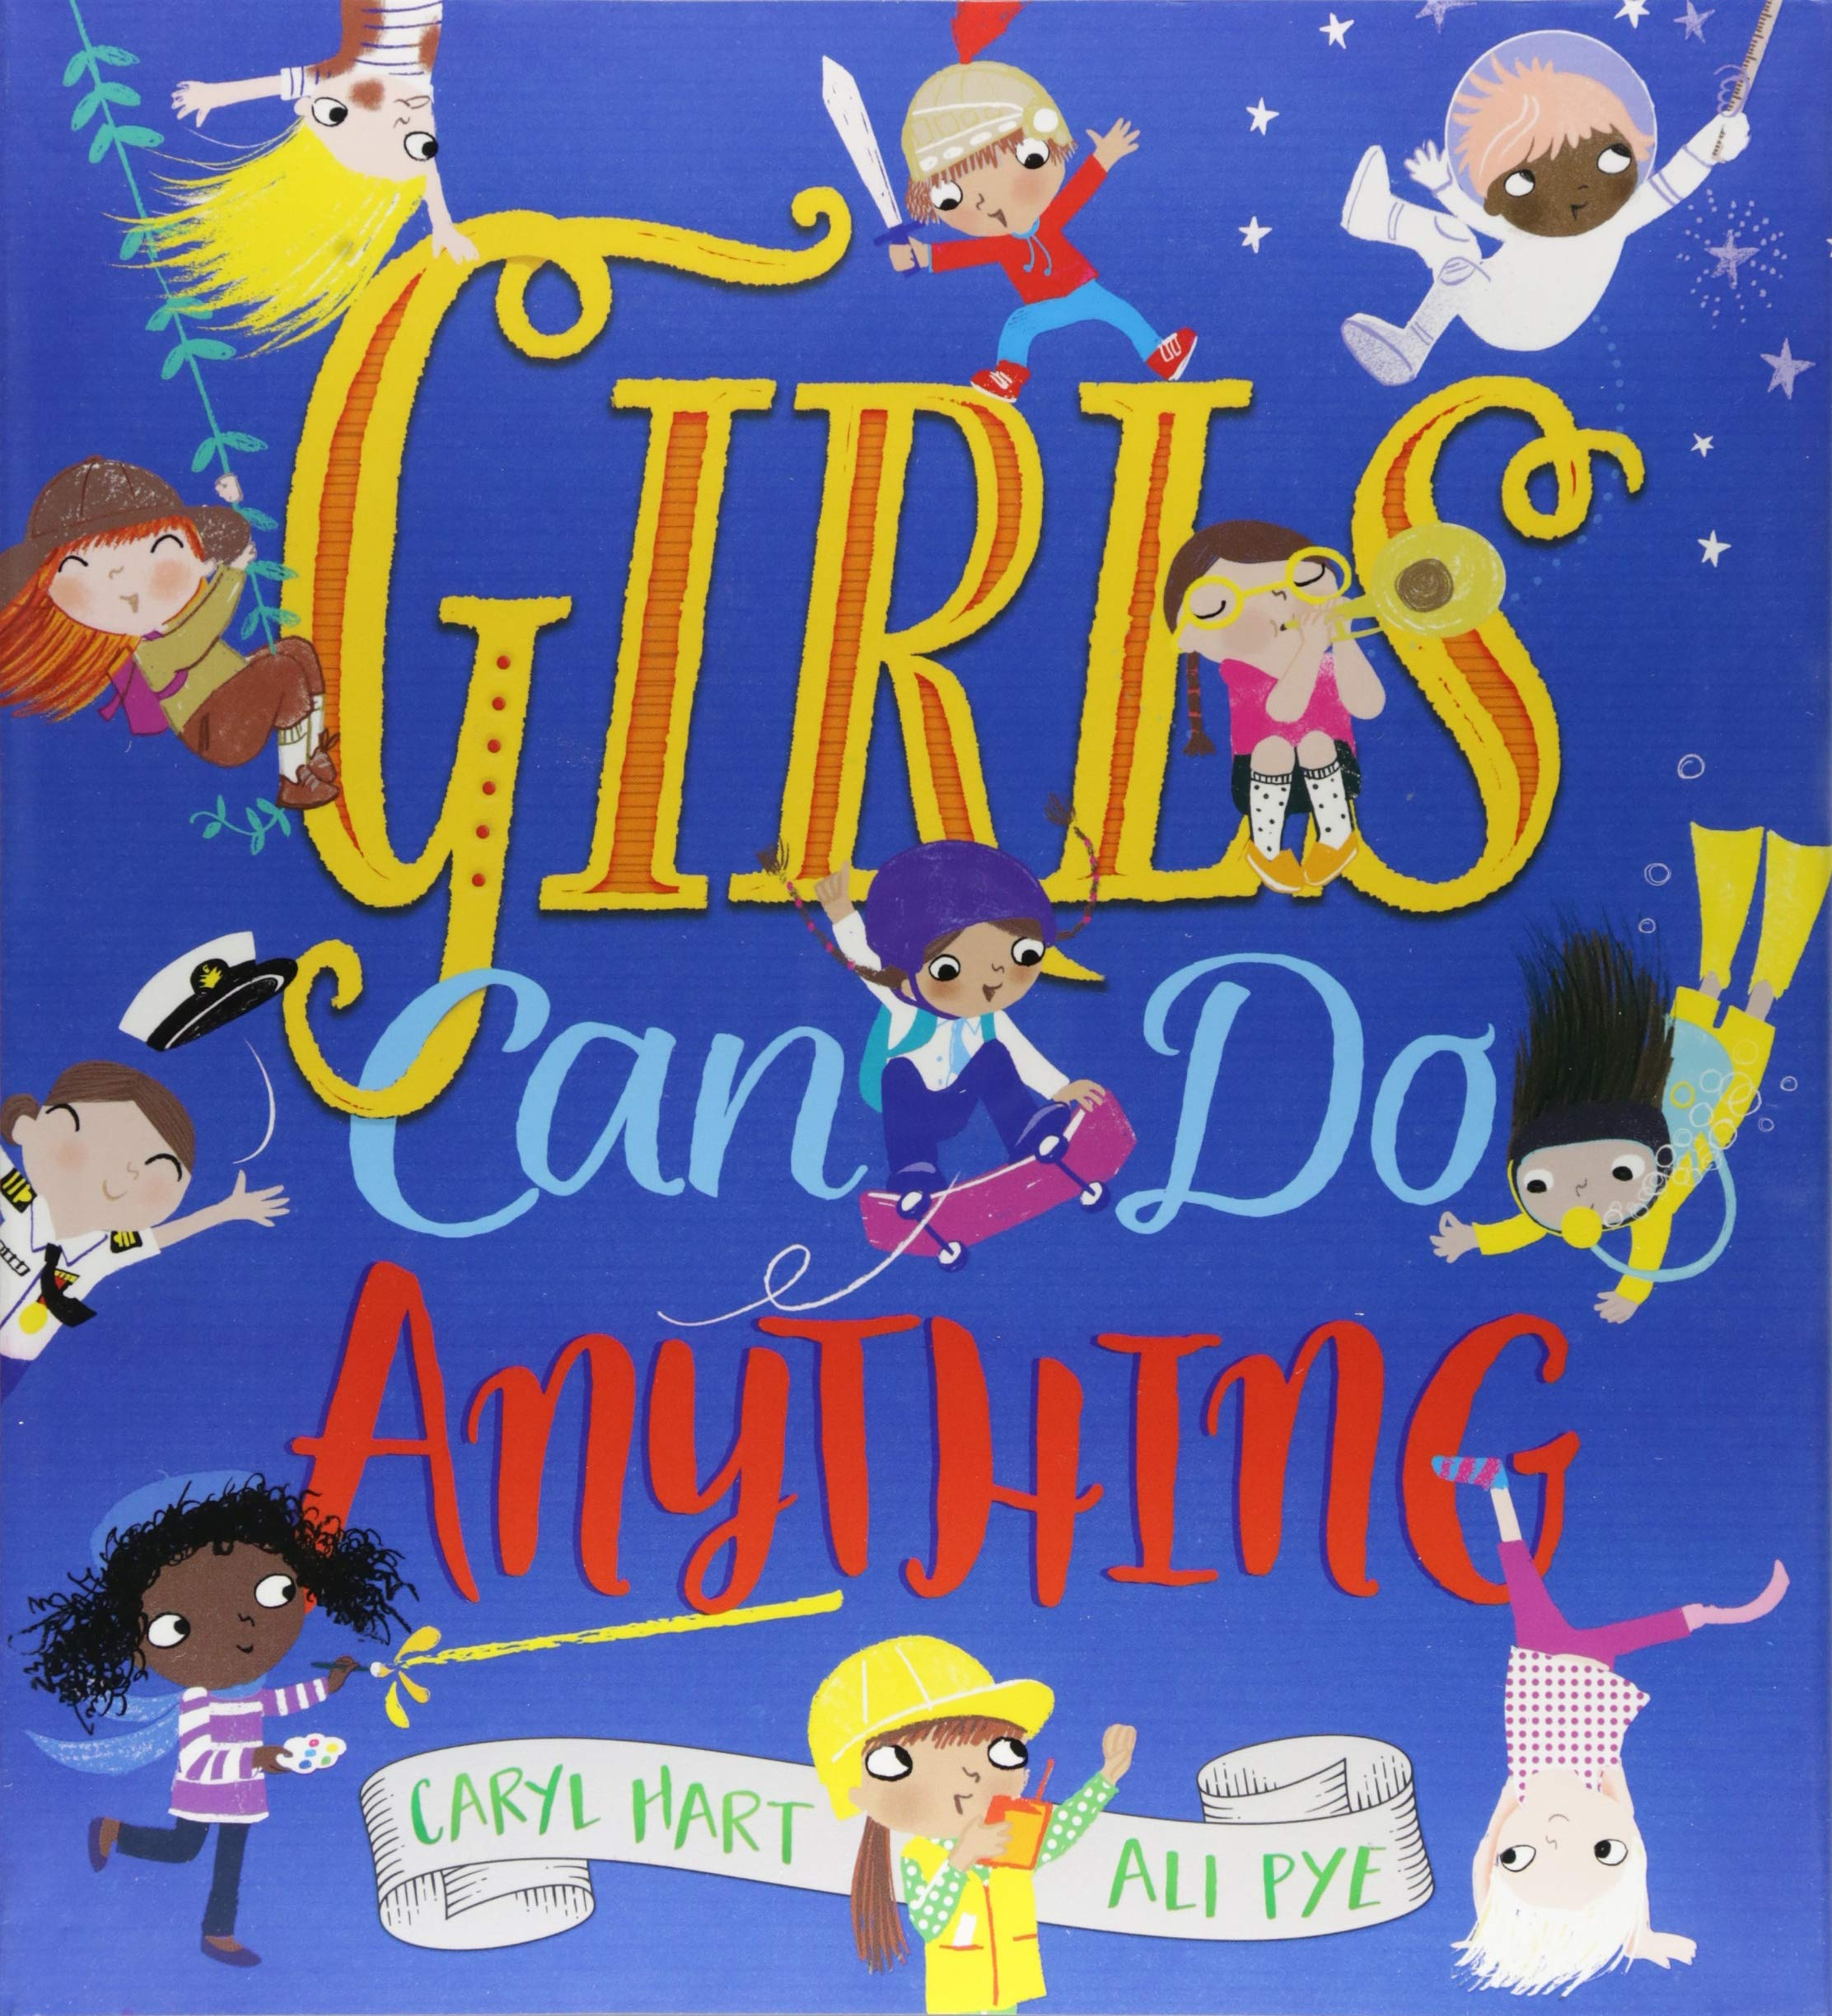 Girls can do anything motivational books for chiildren, teenagers and babies